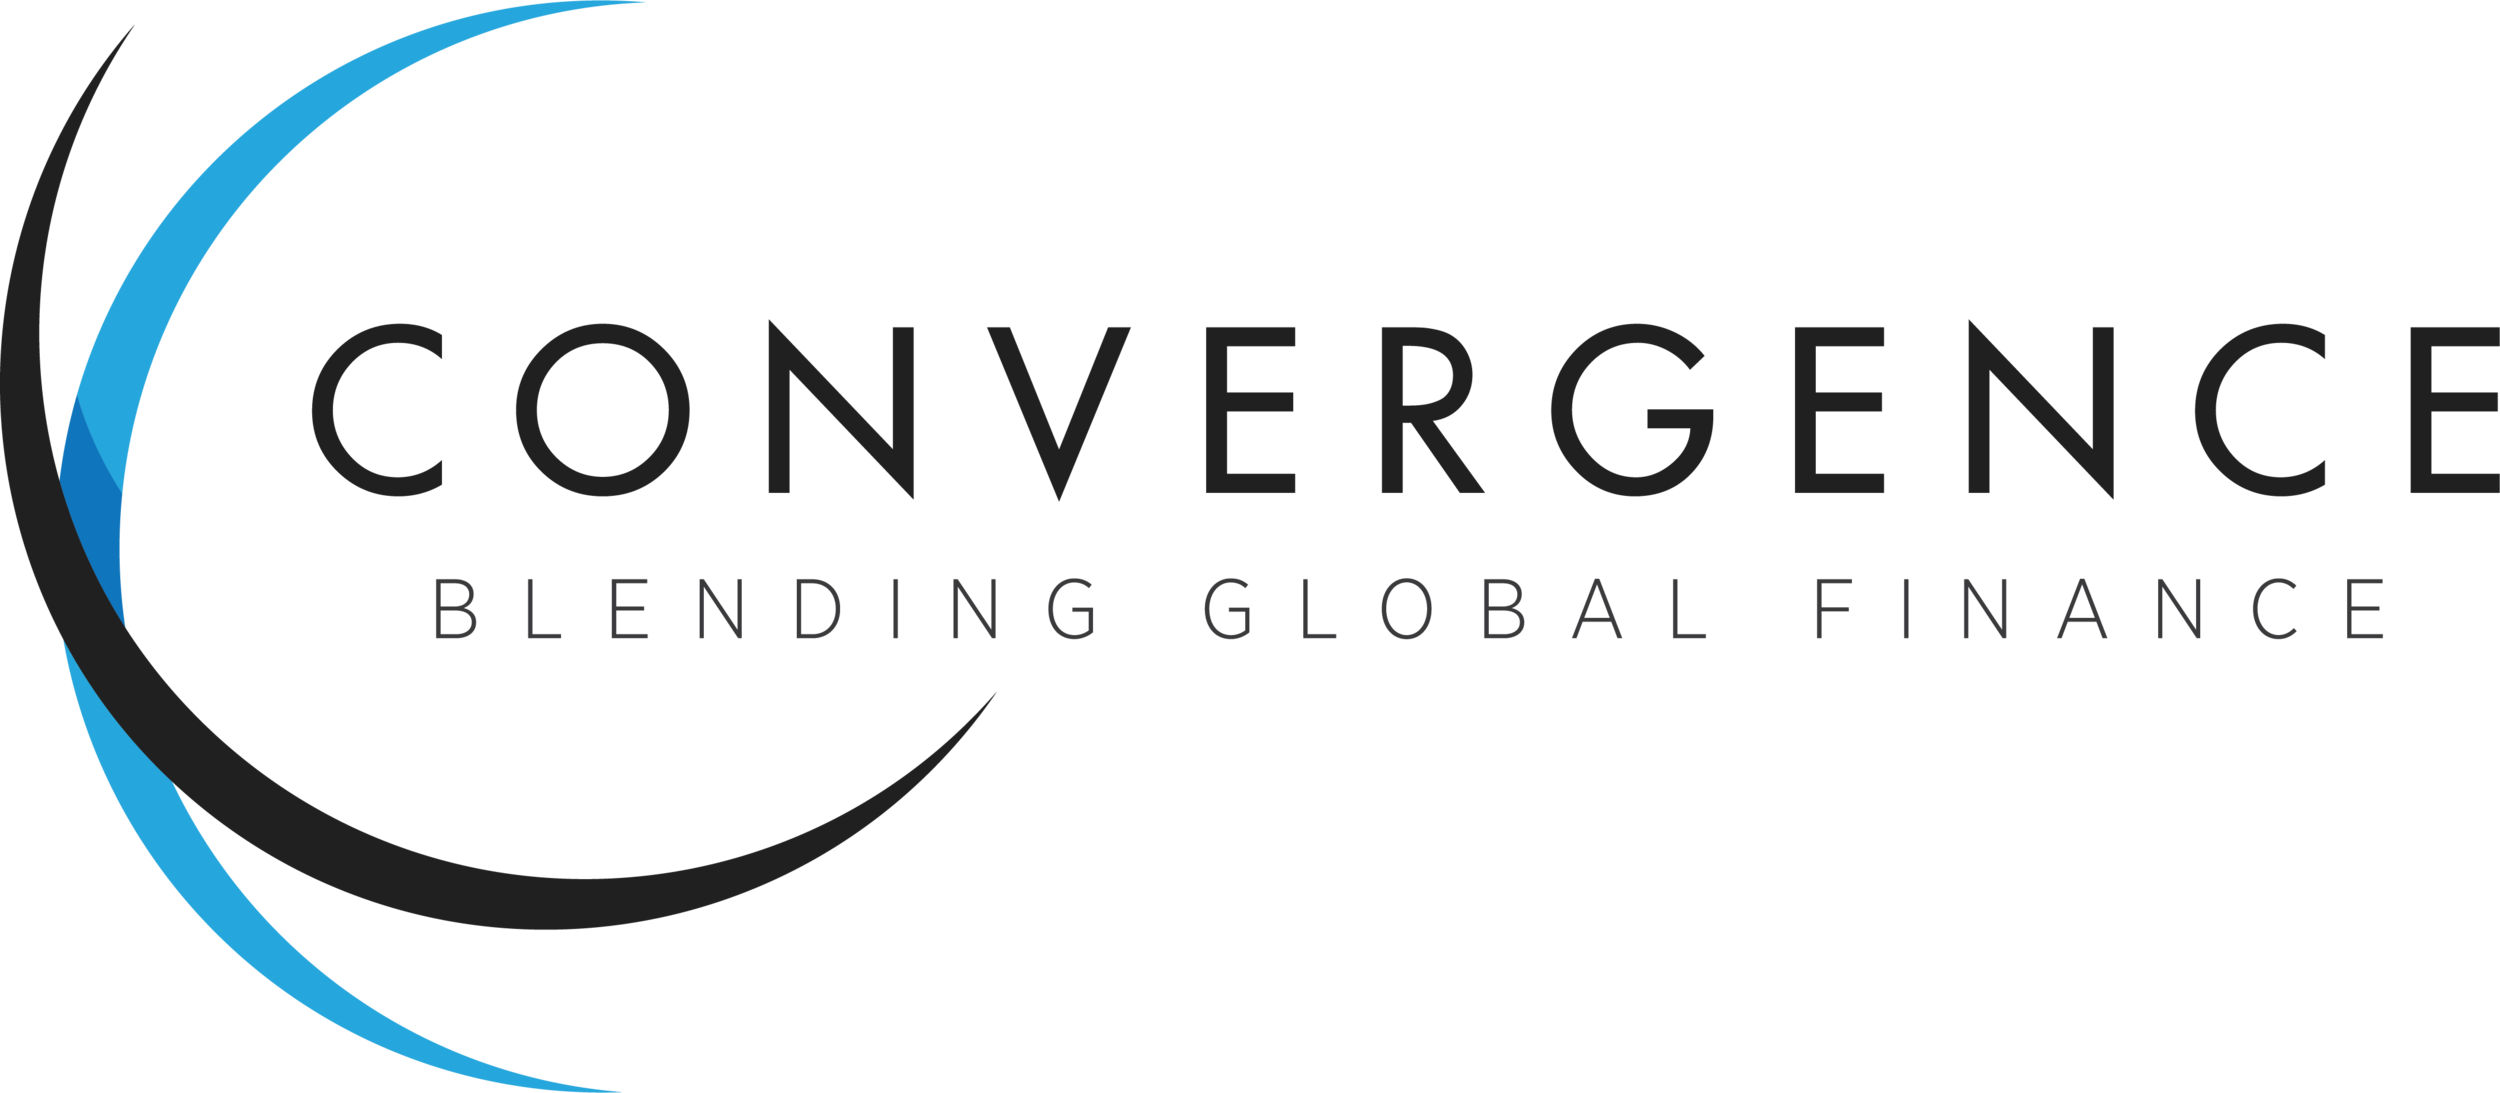 Convergence_logo_official.png